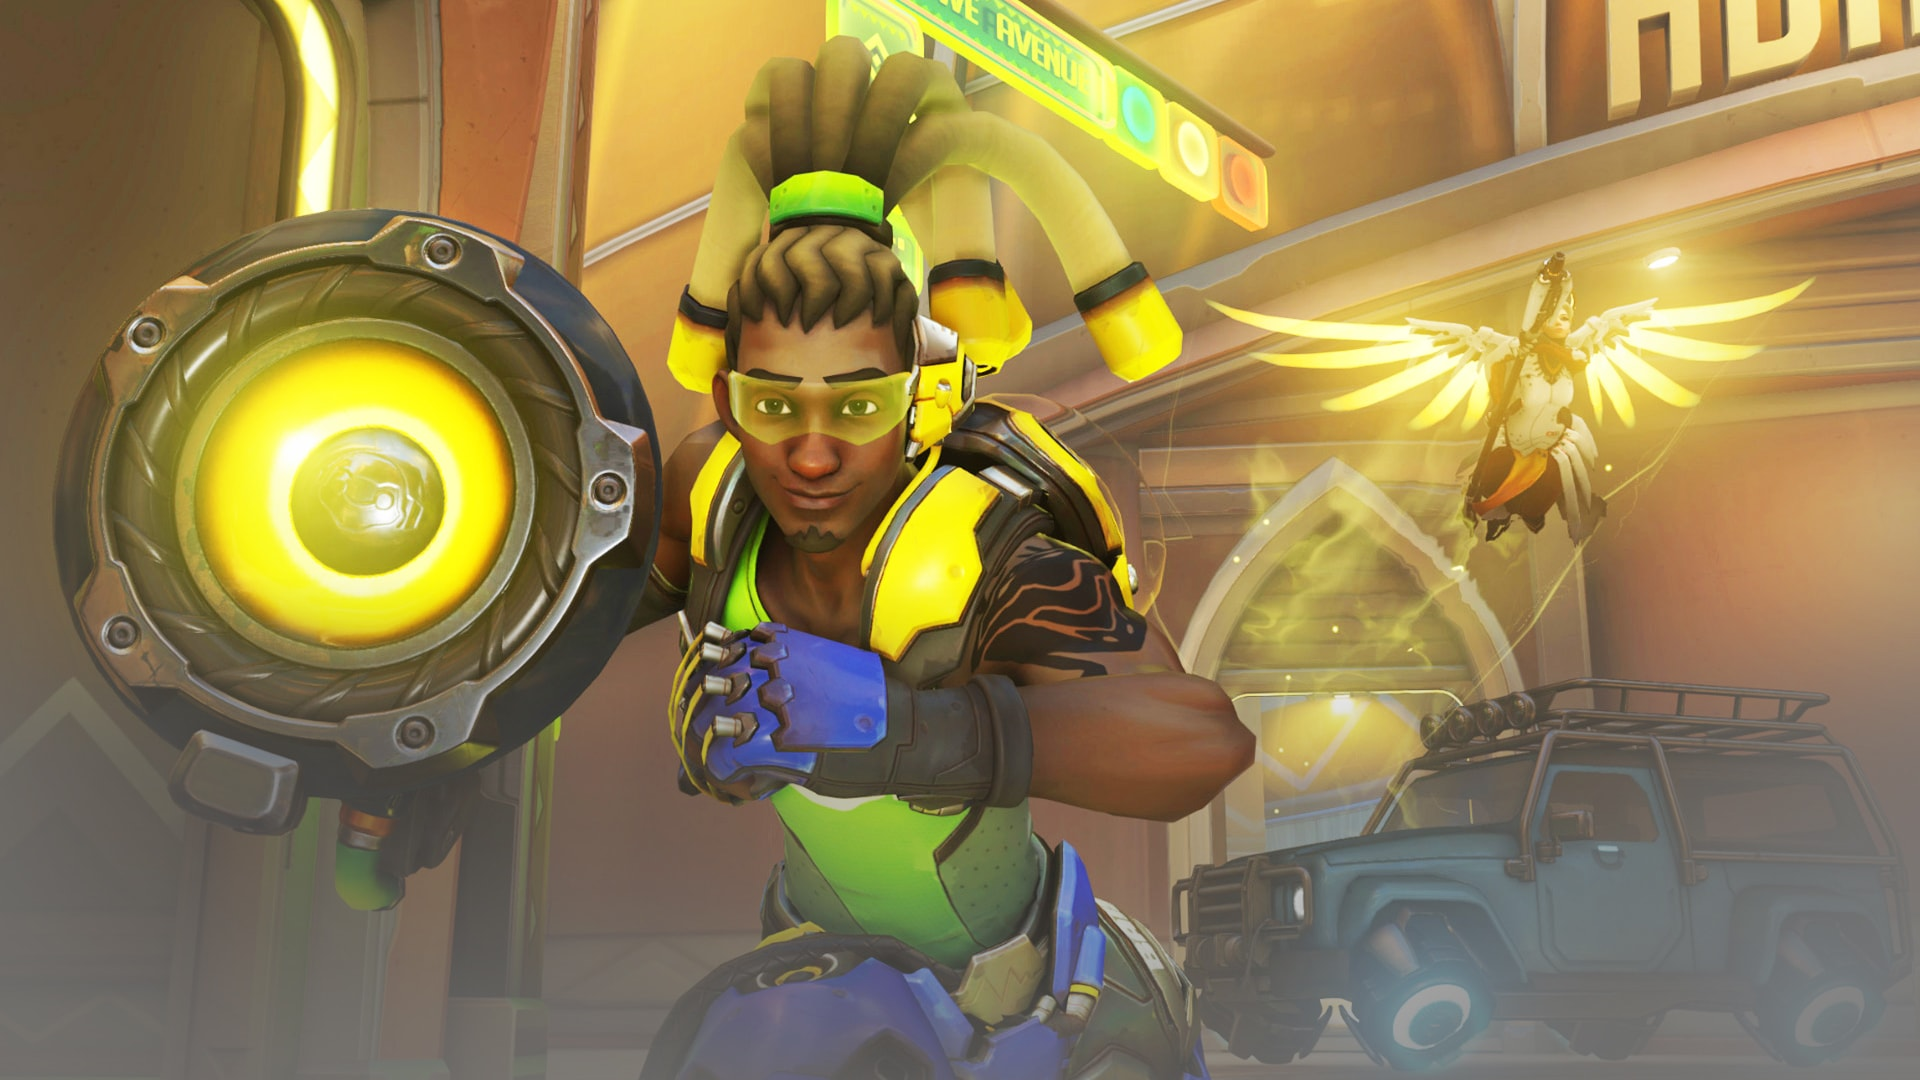 Overwatch : Lúcio Backgrounds